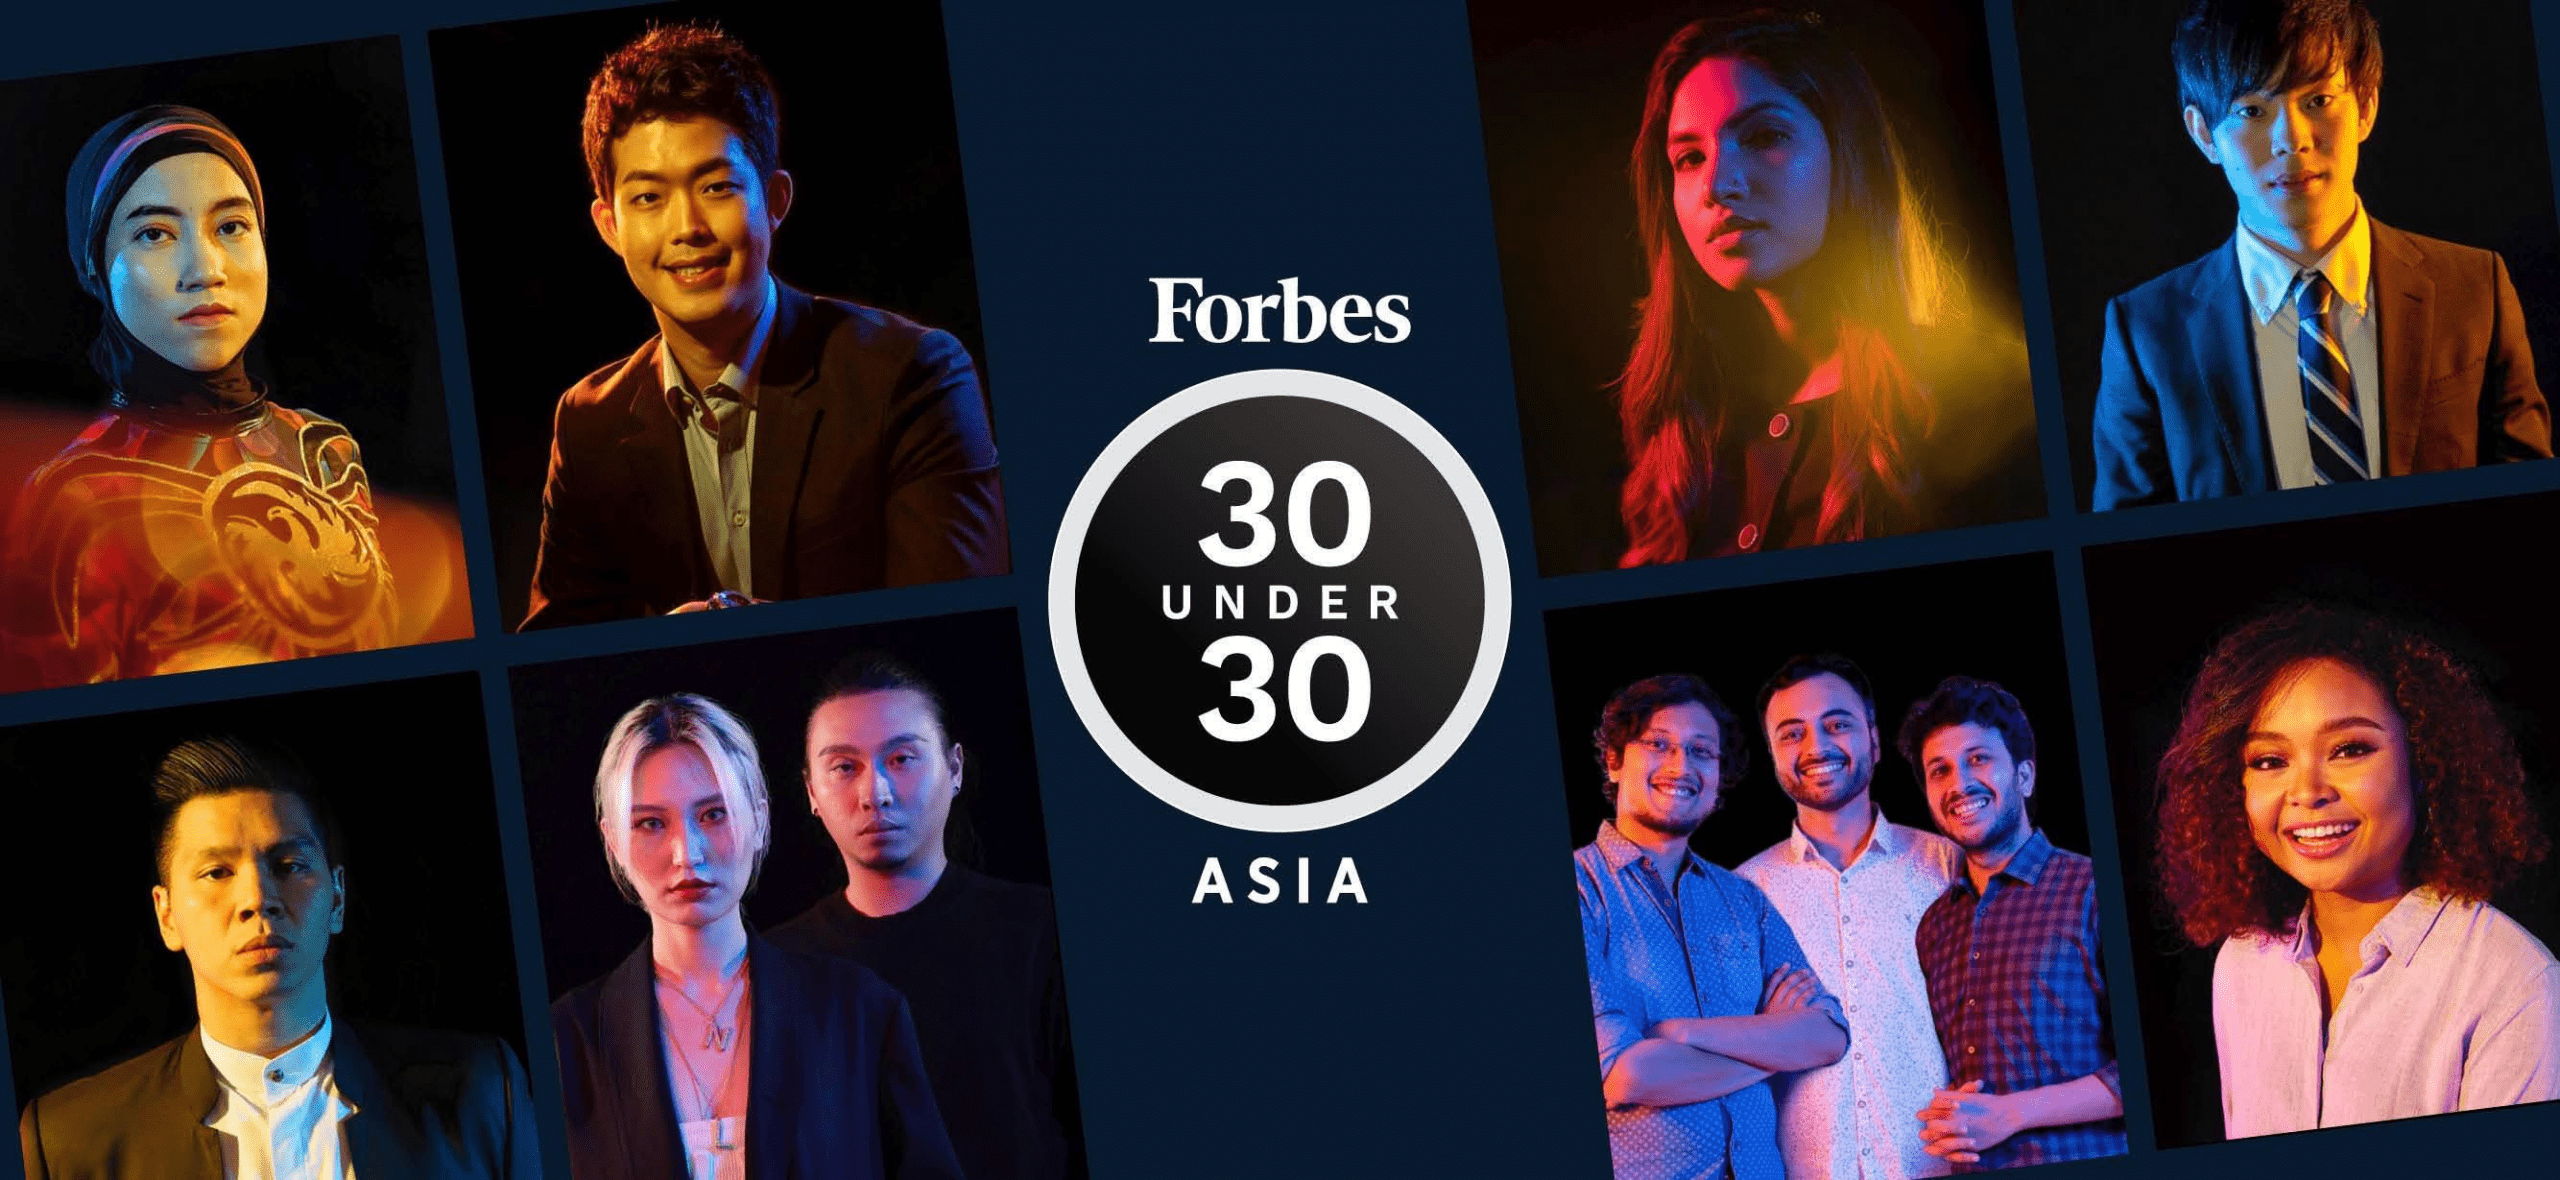 Forbes 30 Under 30 Asia List: Nominations For Class Of 2021 Are Now Open